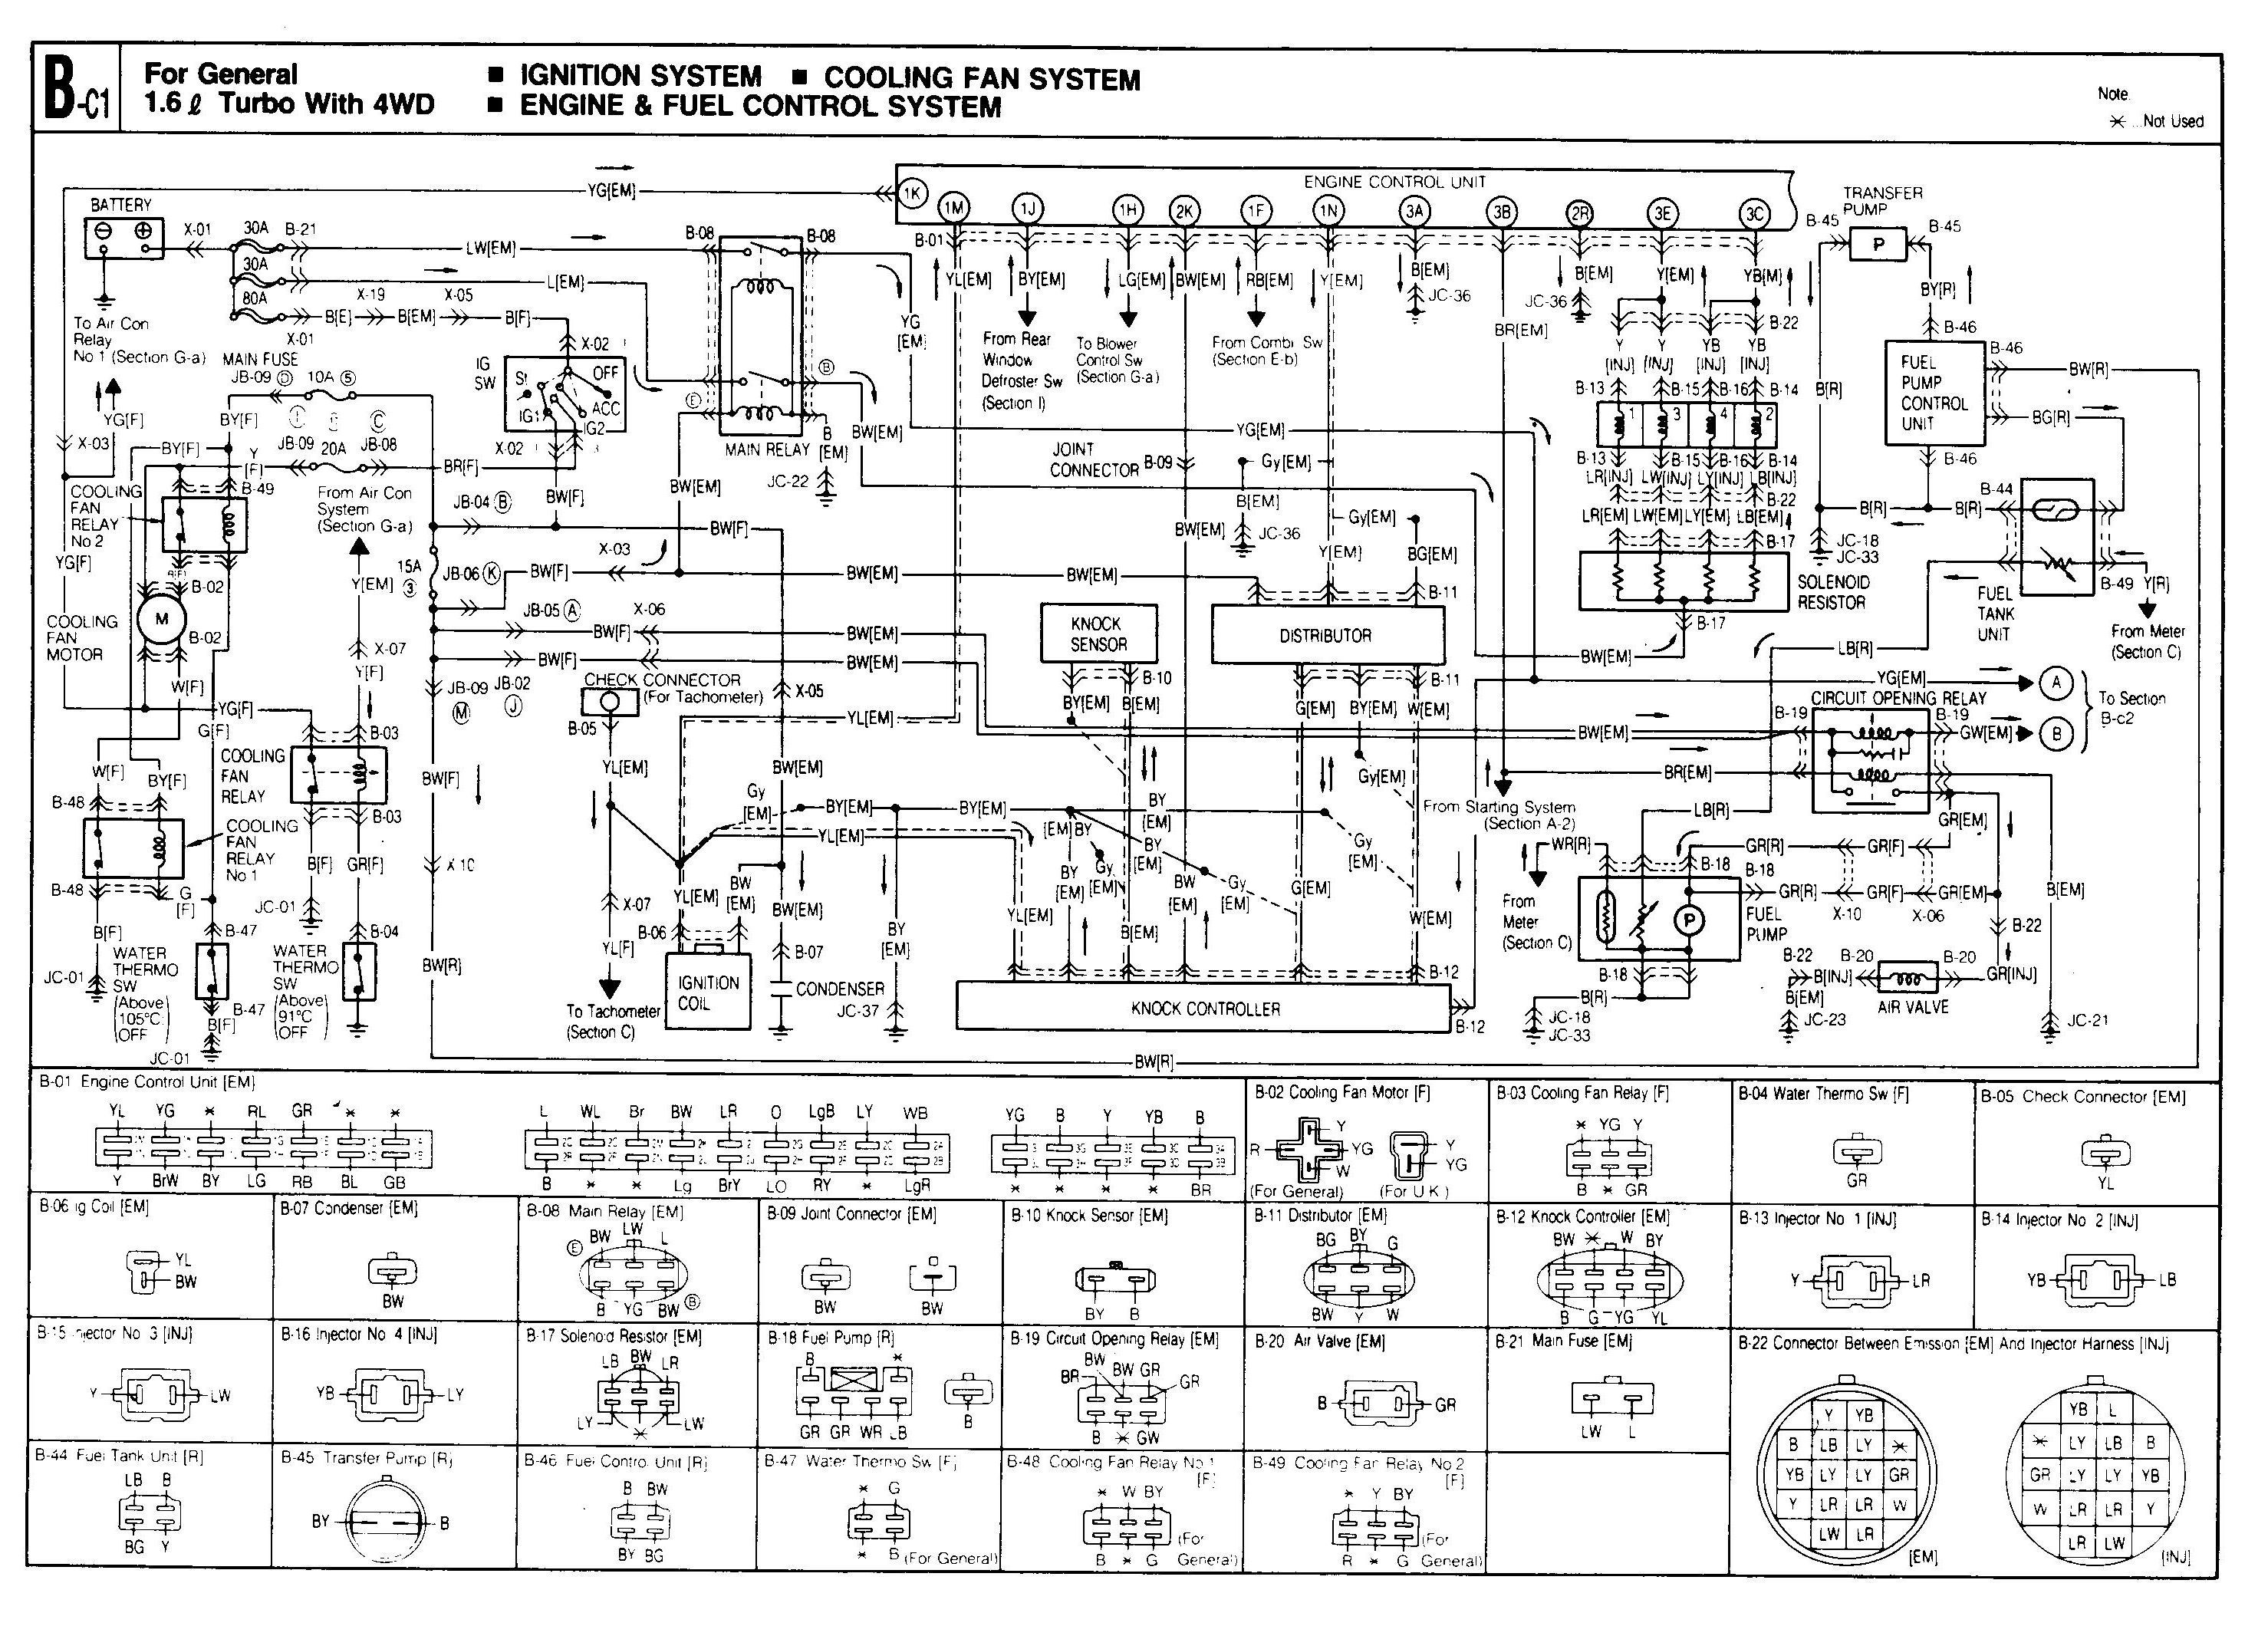 2003 mazda tribute engine diagram 1993 mazda miata radio